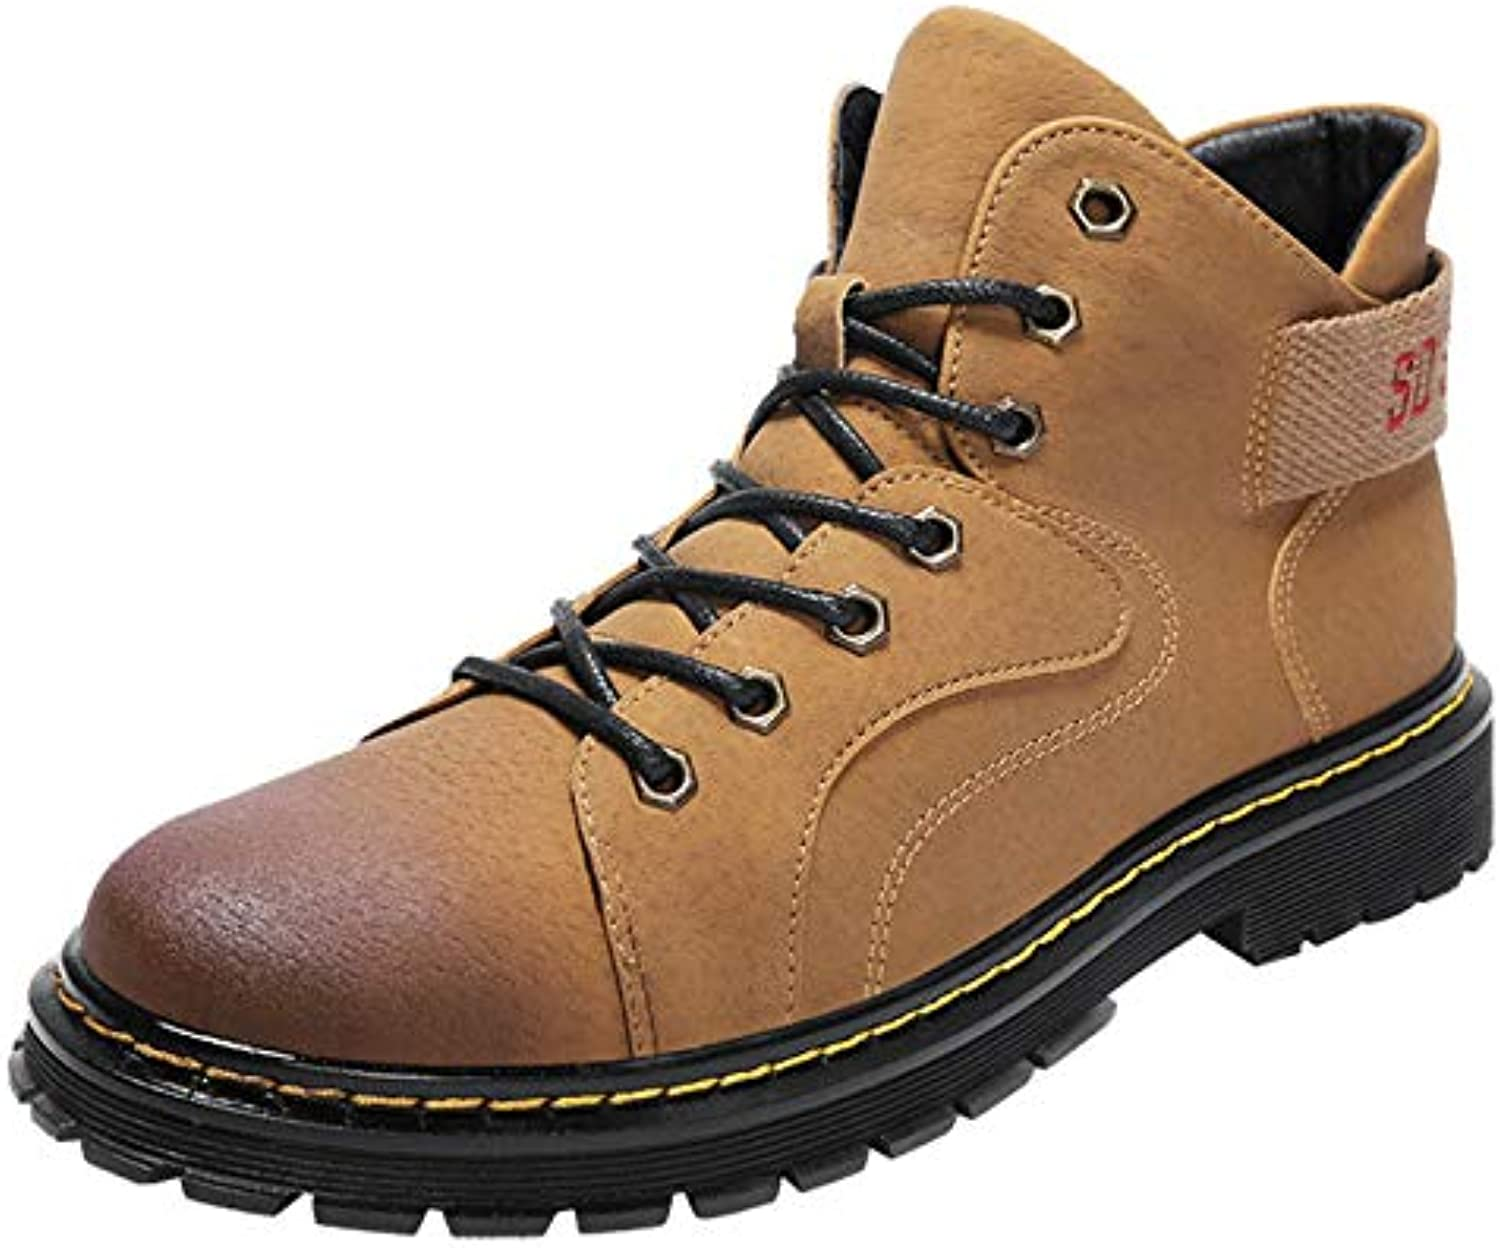 LOVDRAM Boots Men's shoes Autumn And Winter Models High Help Martin Boots Pig Bago Men'S Casual shoes Fashion Wild